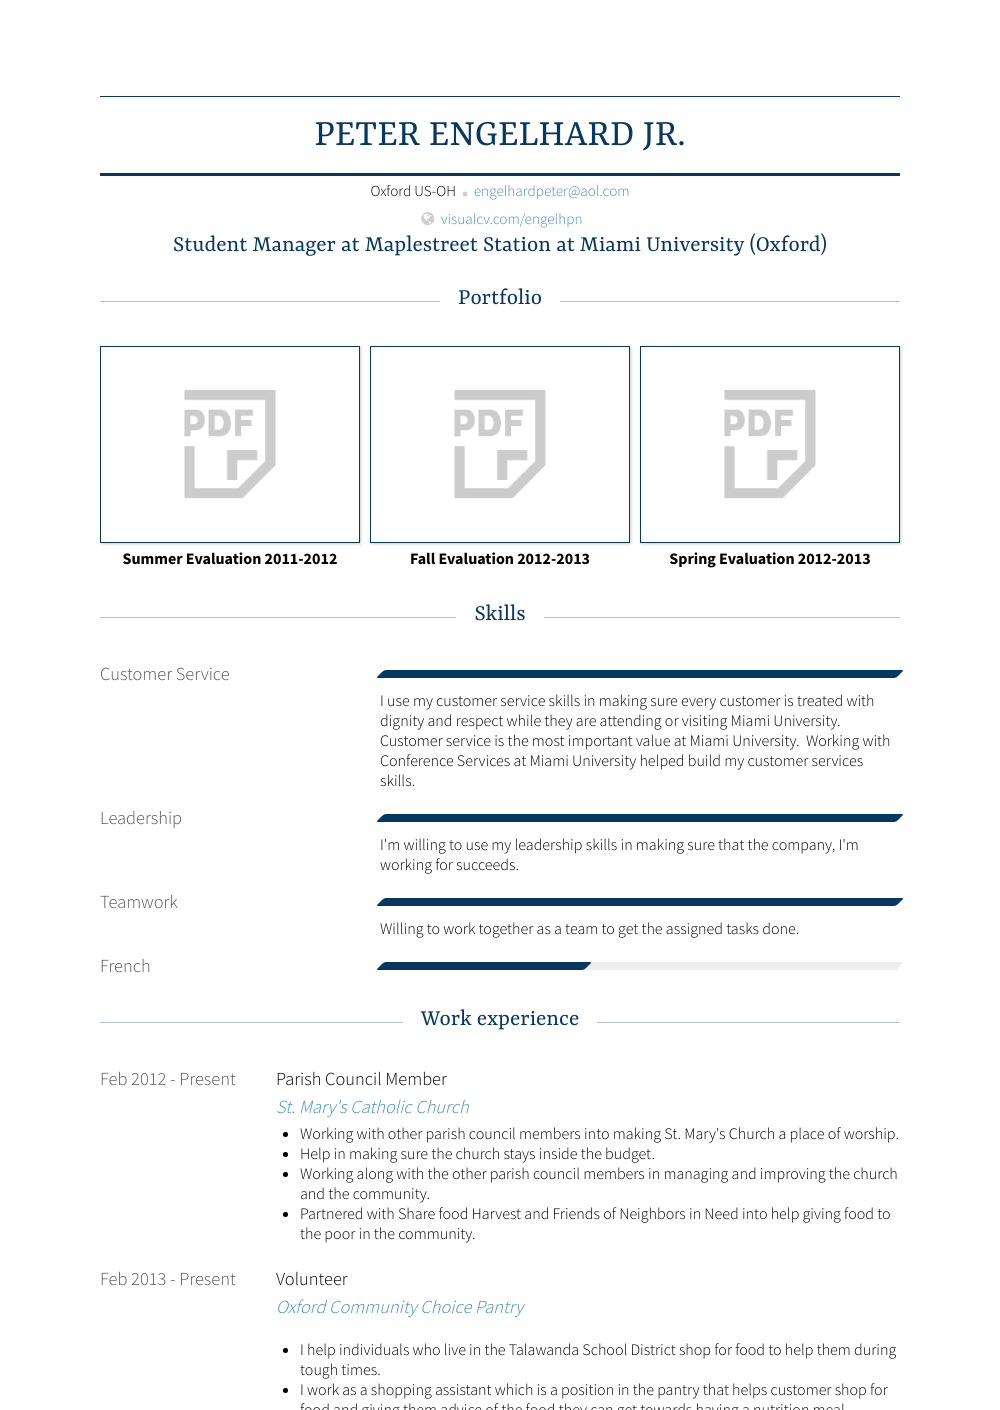 Student Manager Resume Sample